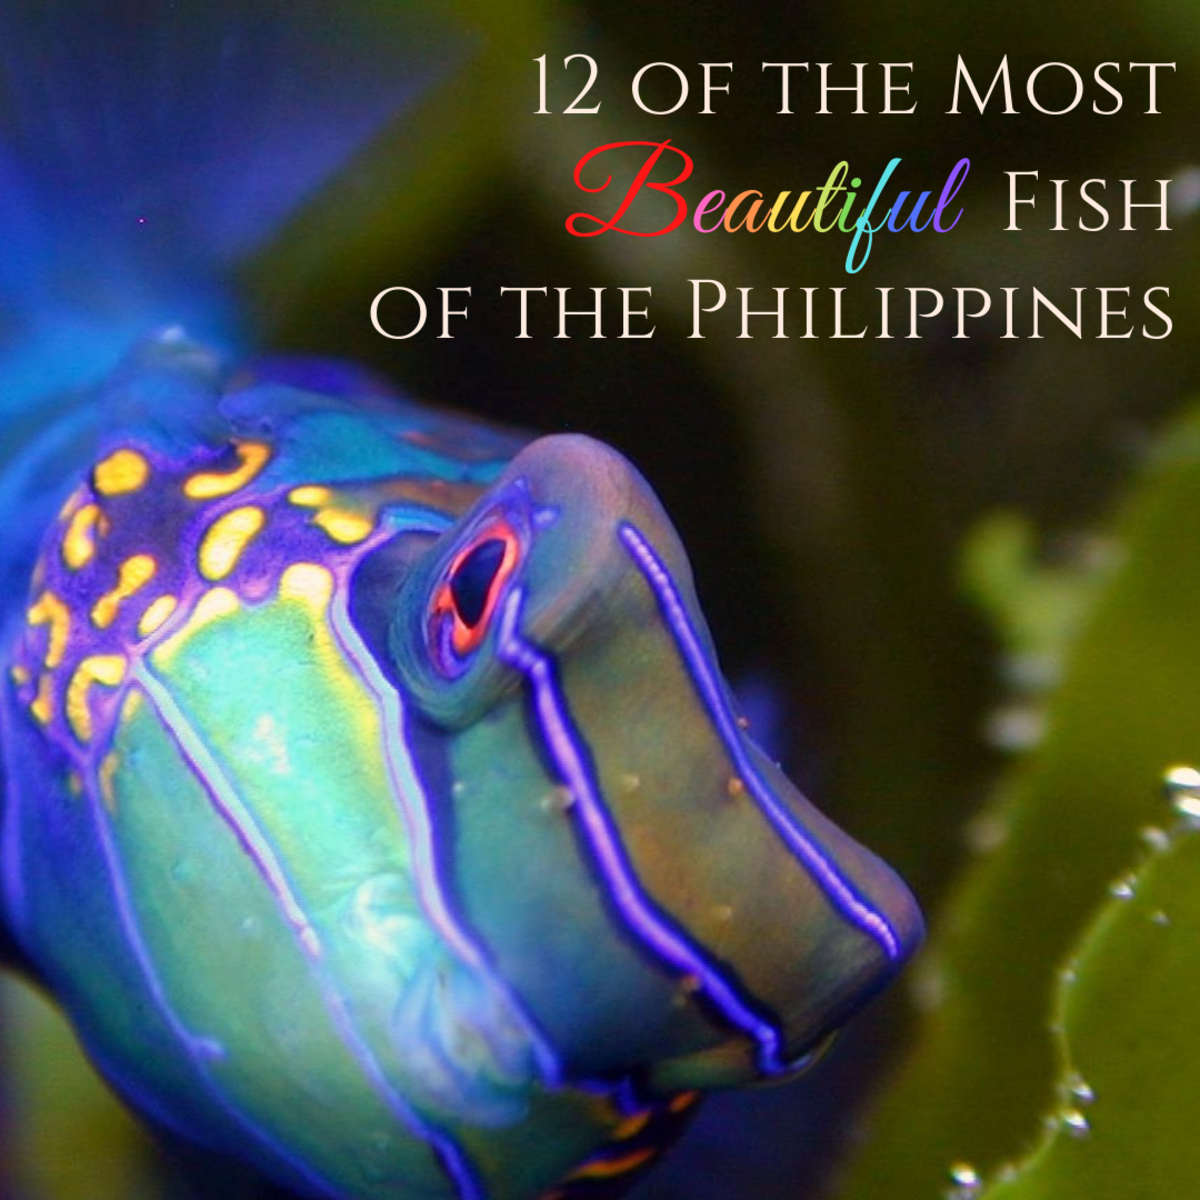 This article will list 12 of the most gorgeous and wonderful fish that live around the Philippine islands.